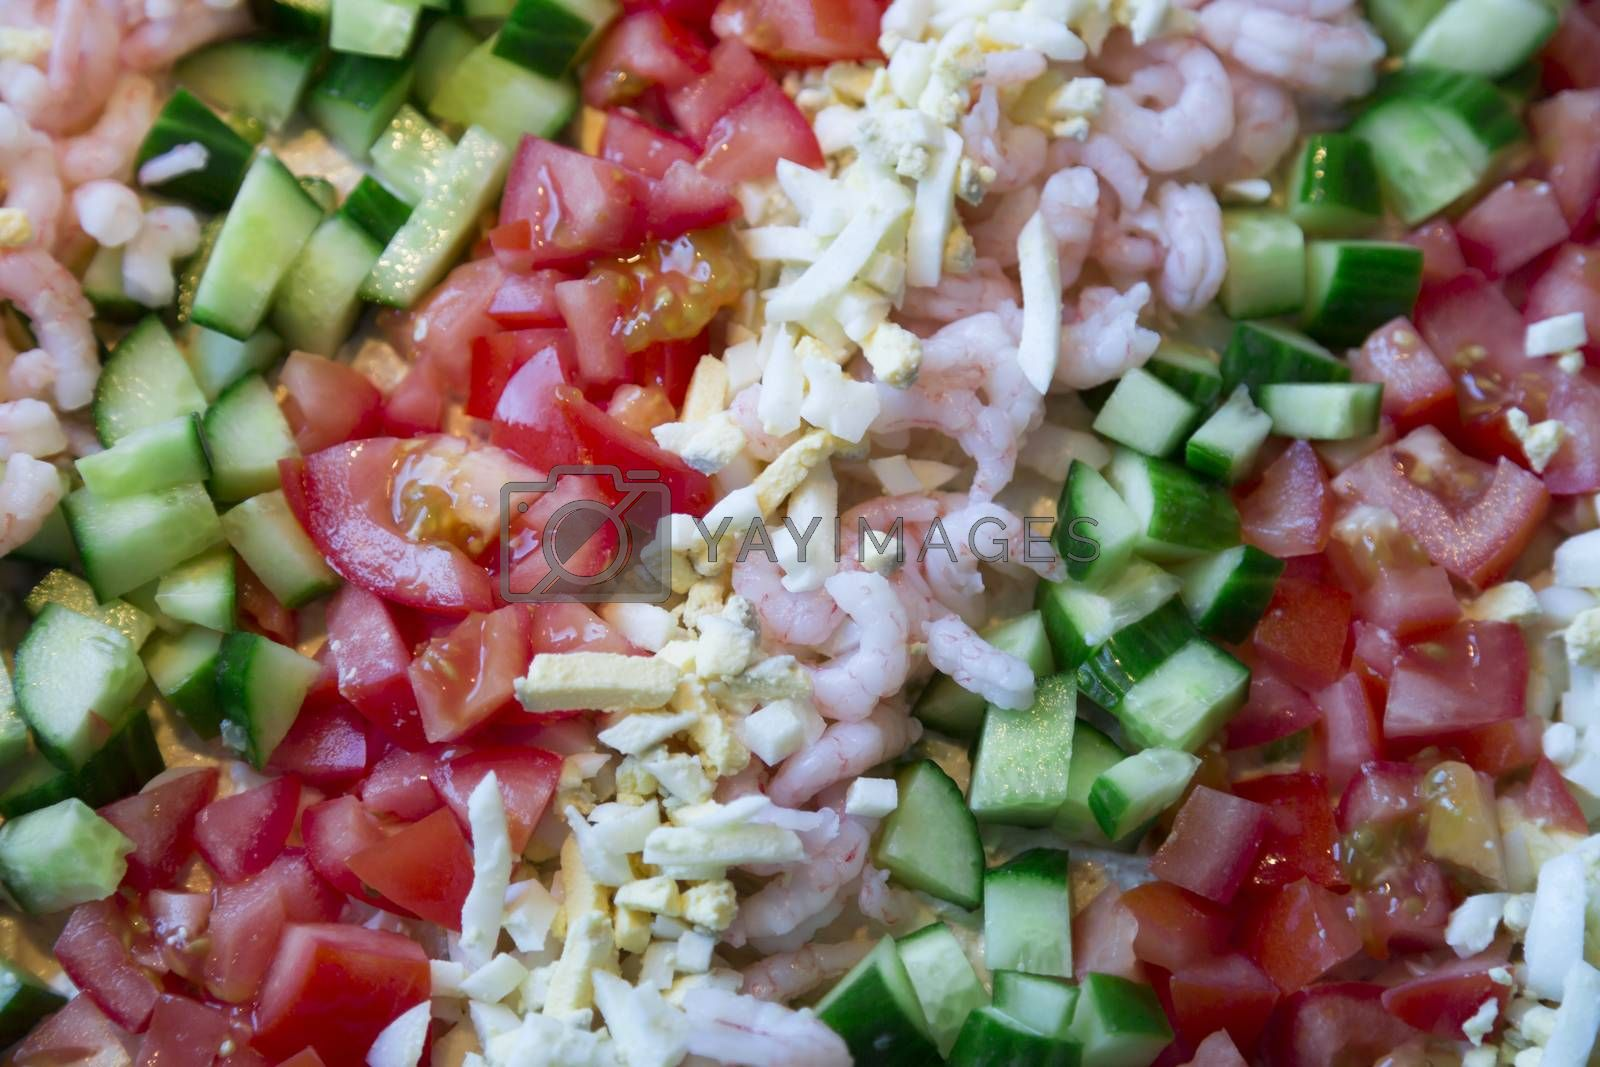 Sandwich layer cake Topping consisting of cucumber, eggs, and tomato.